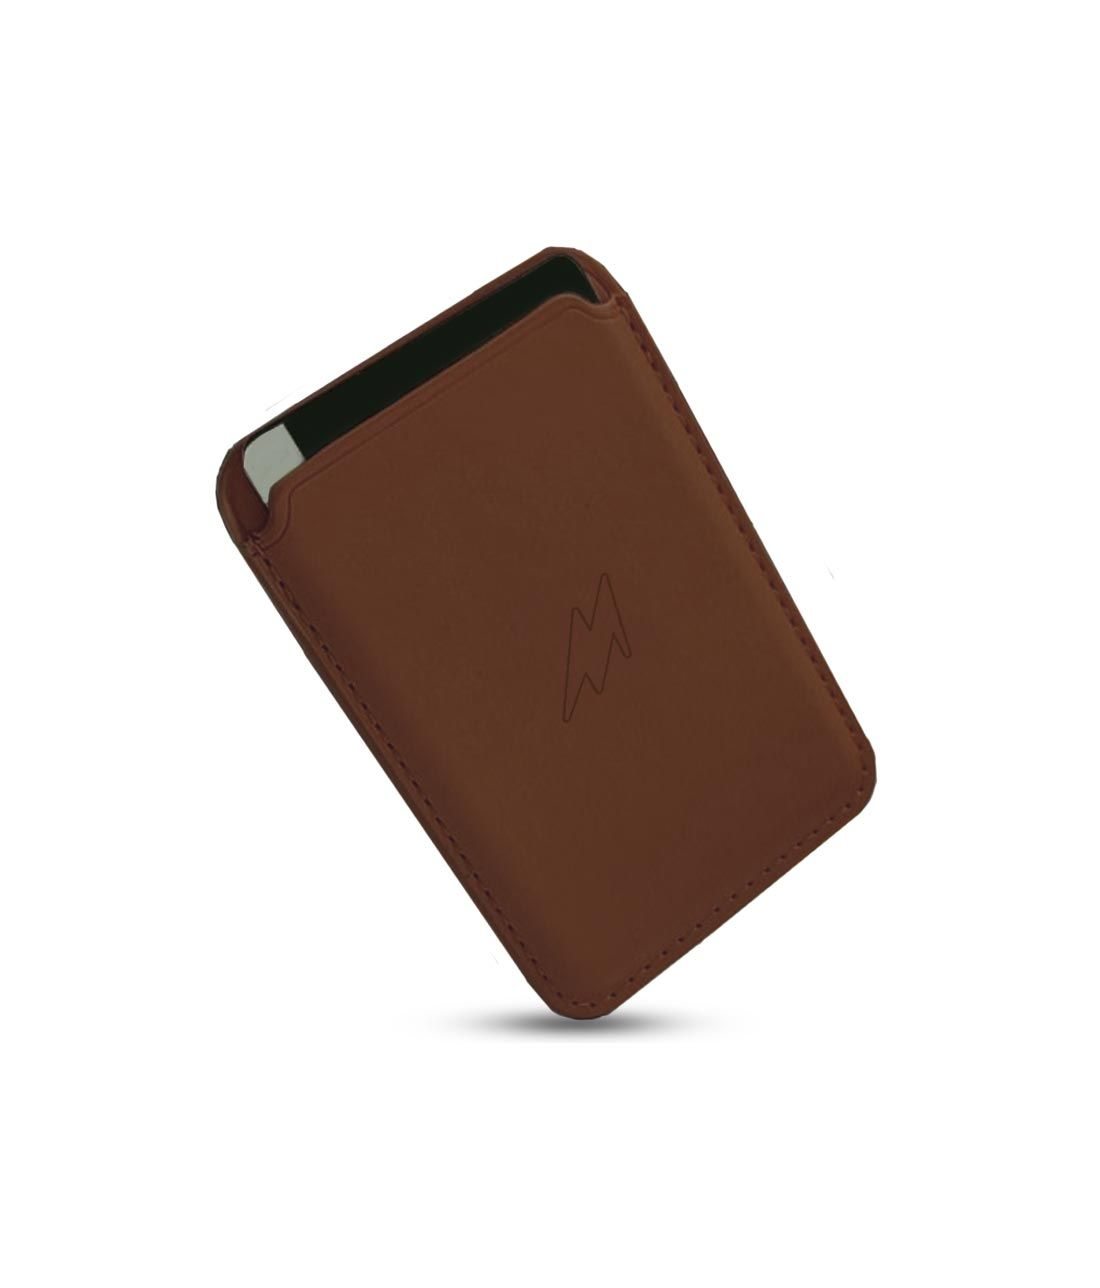 Leather Case Tan Brown - Magsafe Card Case